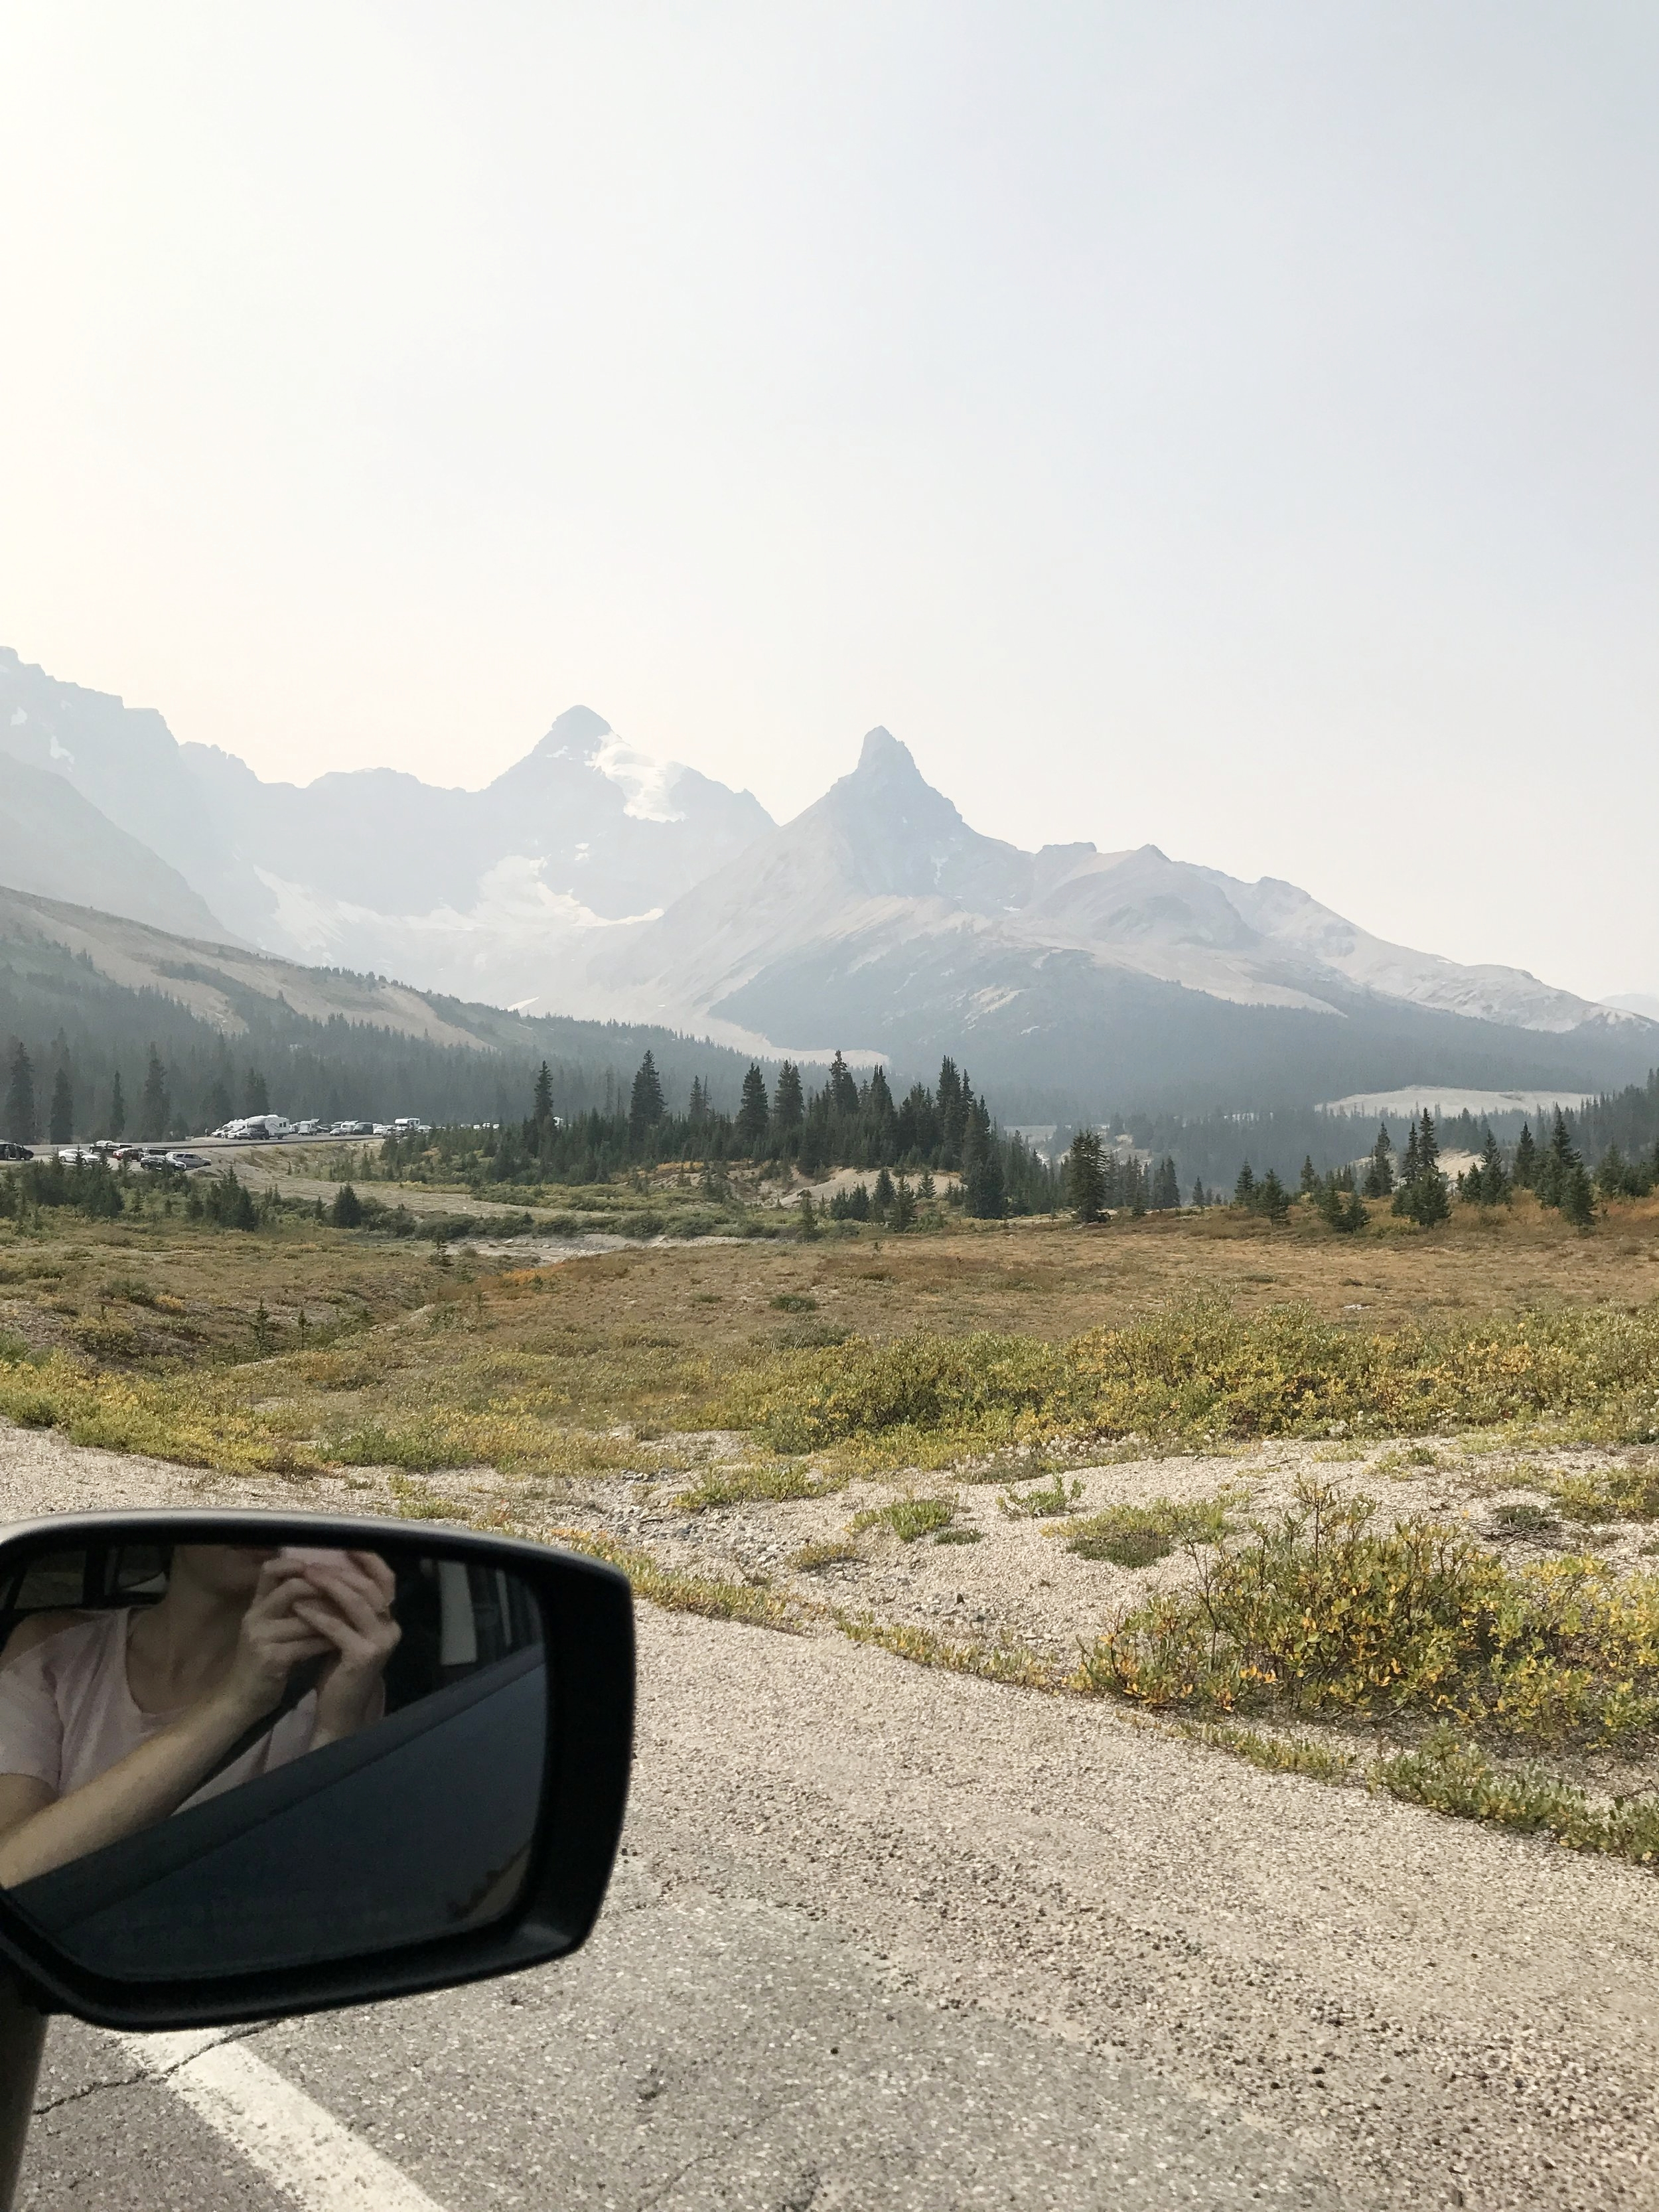 Every twist and turn of the Icefields Parkway would have views like this. Just wow!!